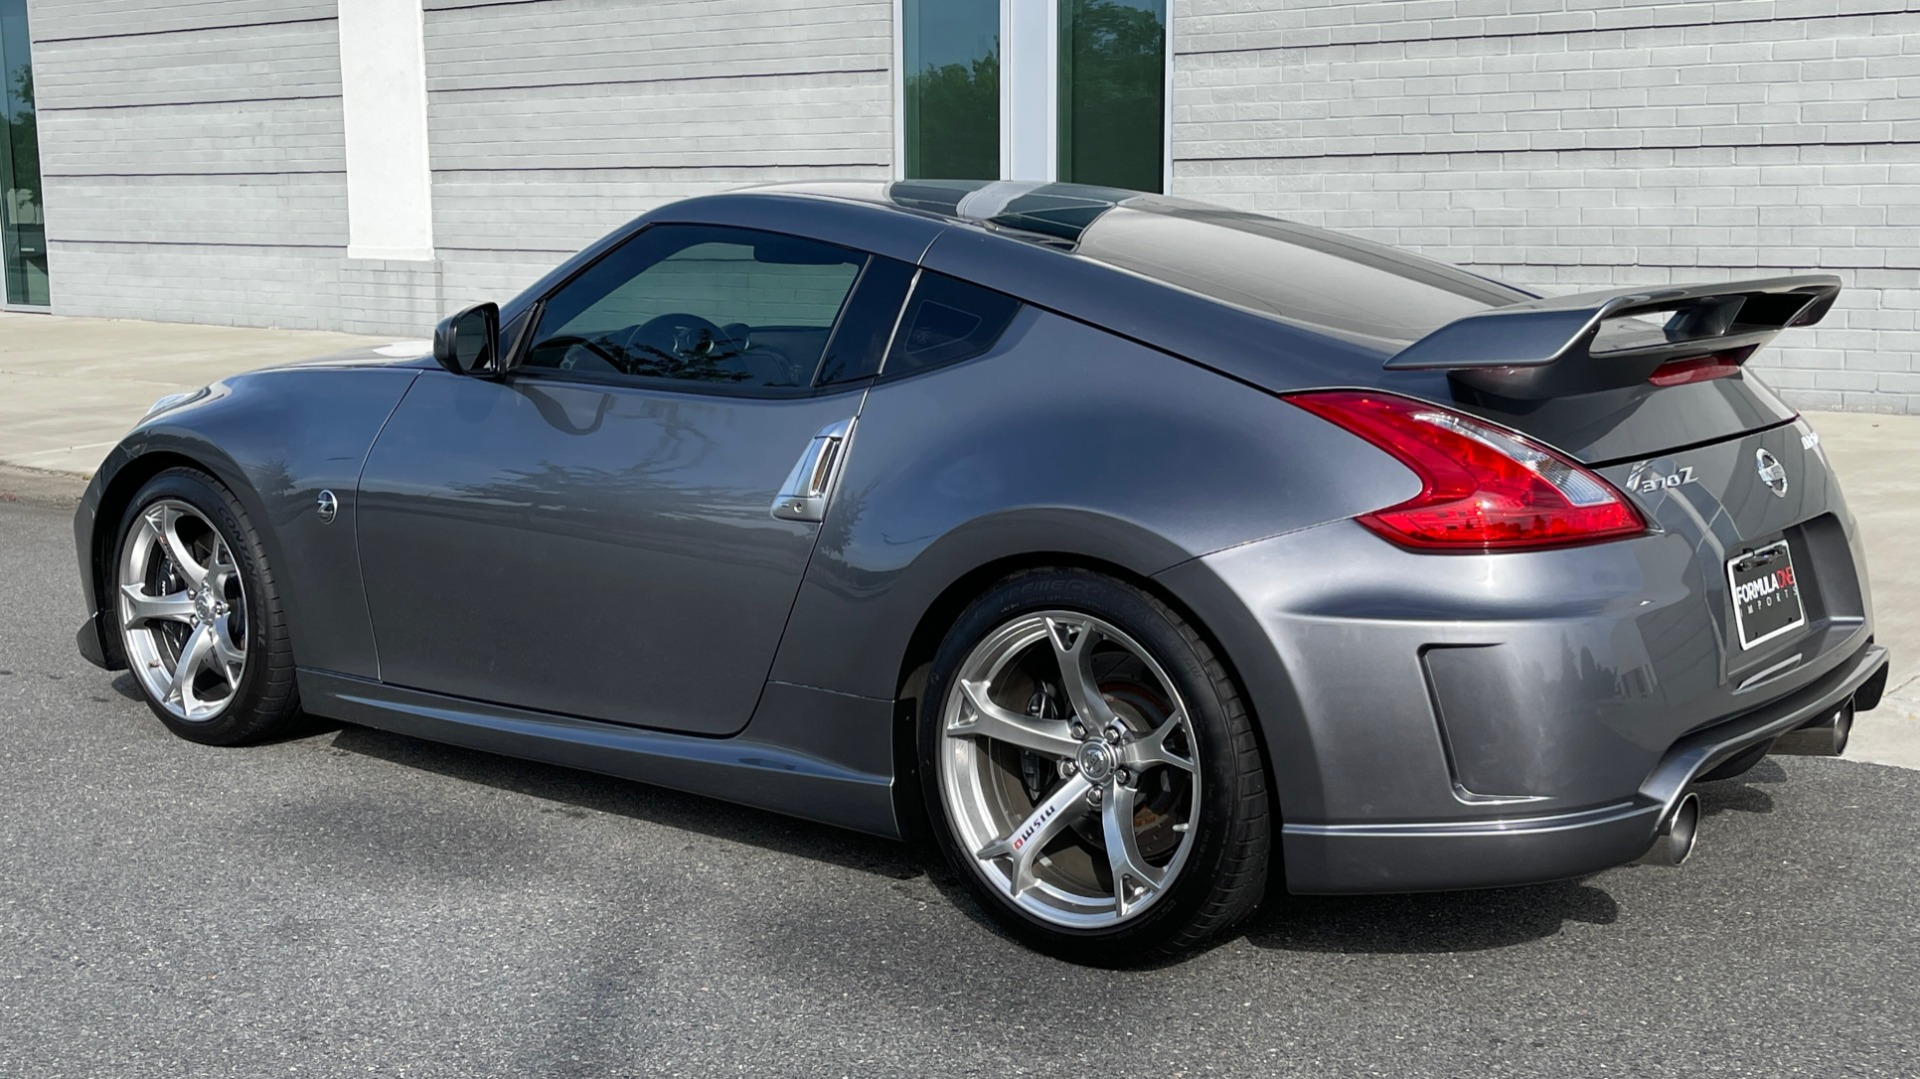 Used 2011 Nissan 370Z NISMO COUPE / 3.7L V6 / 6-SPD MAN / AUTO CLIMATE CONTROL for sale $32,995 at Formula Imports in Charlotte NC 28227 5